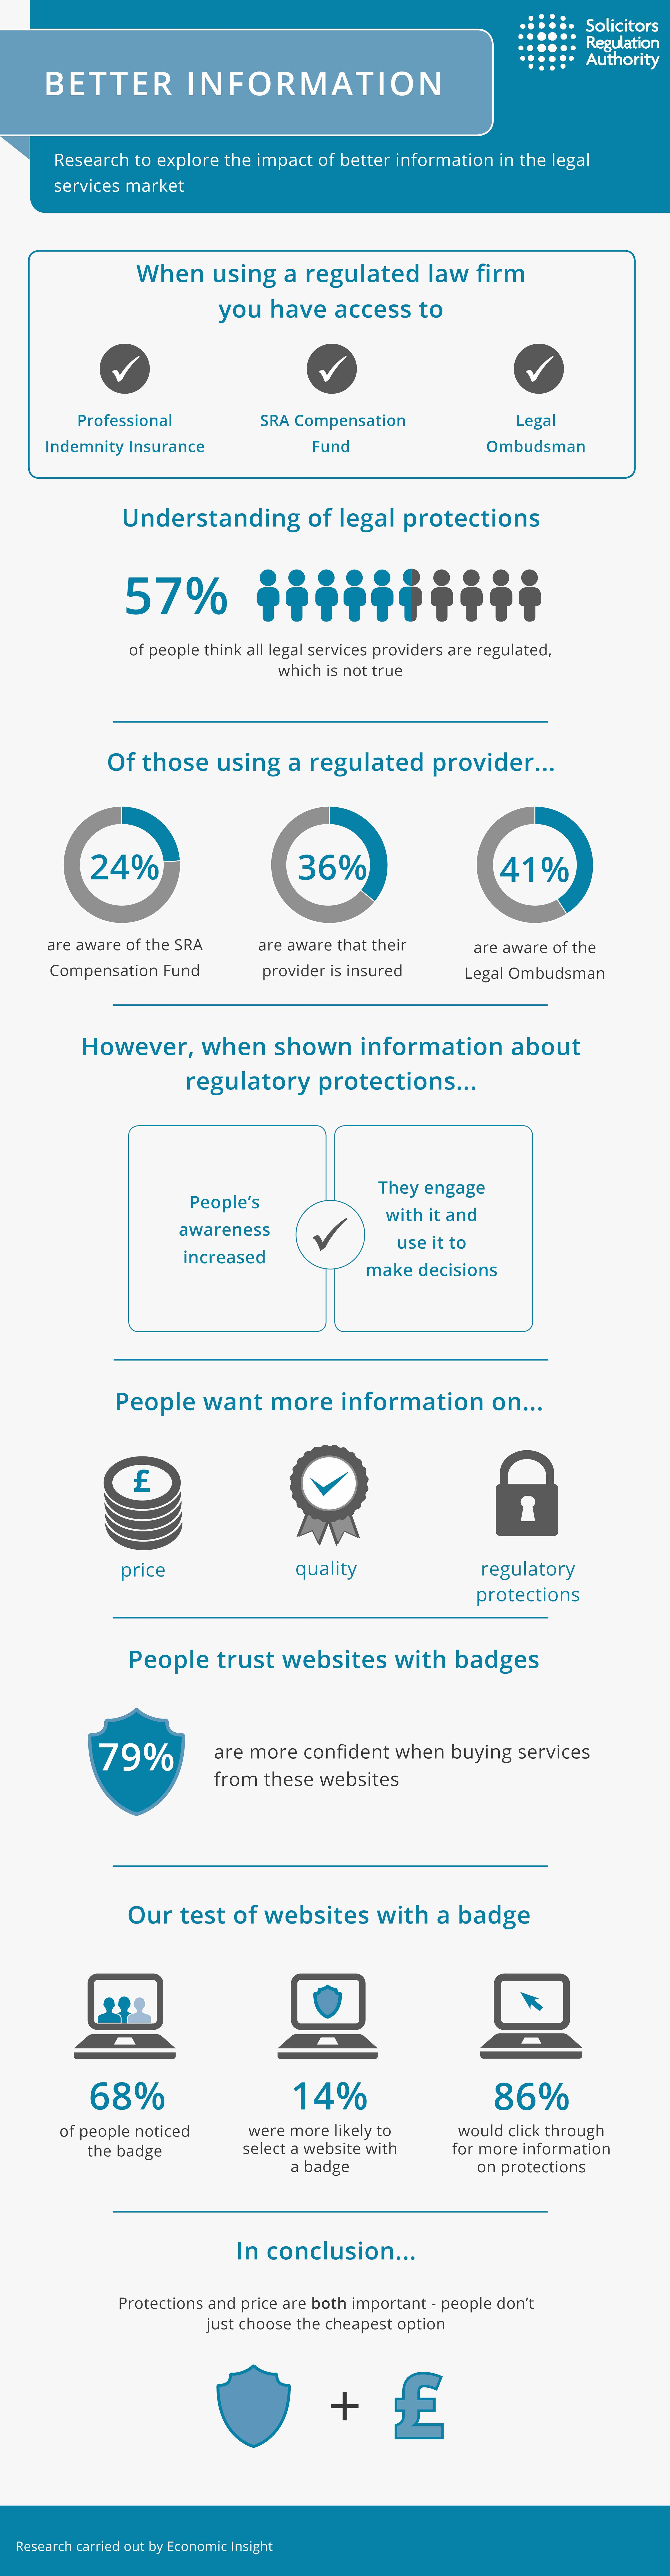 Research to explore the impact of better information in the legal services market